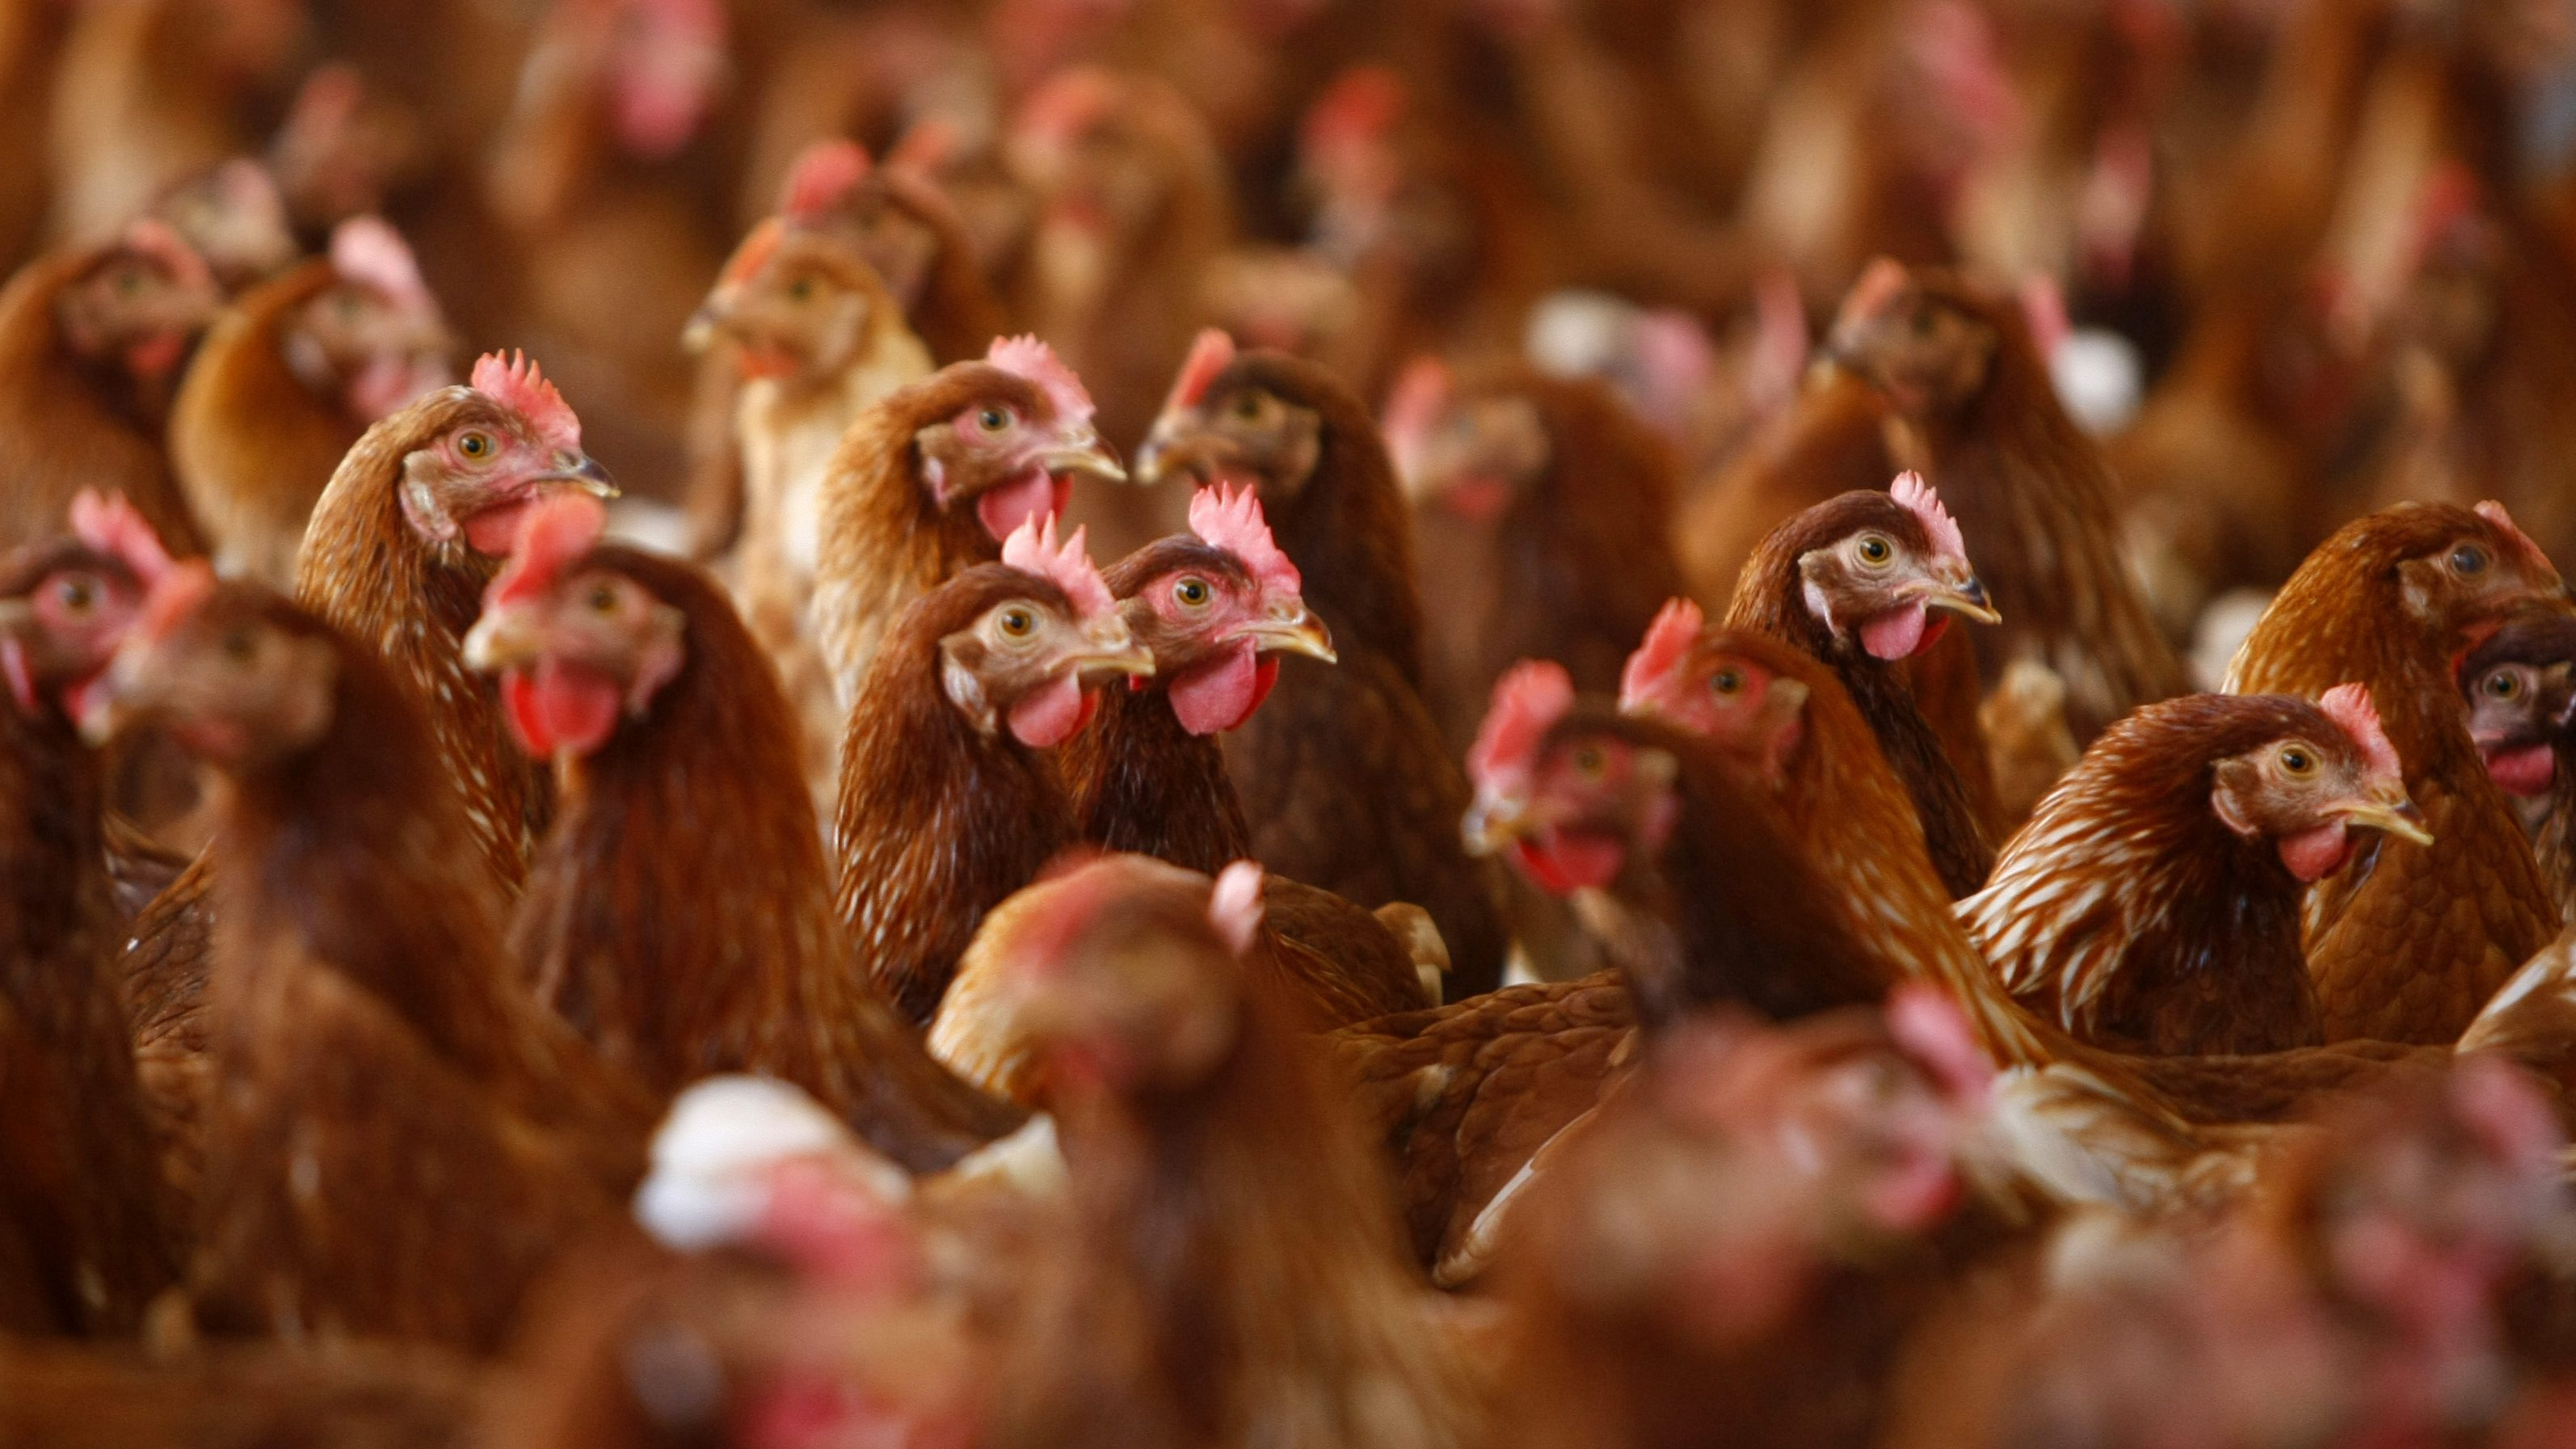 Cage free hens are seen at an egg farm in San Diego County in this picture taken July 29, 2008. A fierce battle looming in California between animal rights campaigners and egg producers over the welfare of caged hens could crack the state's $300 million egg production industry.